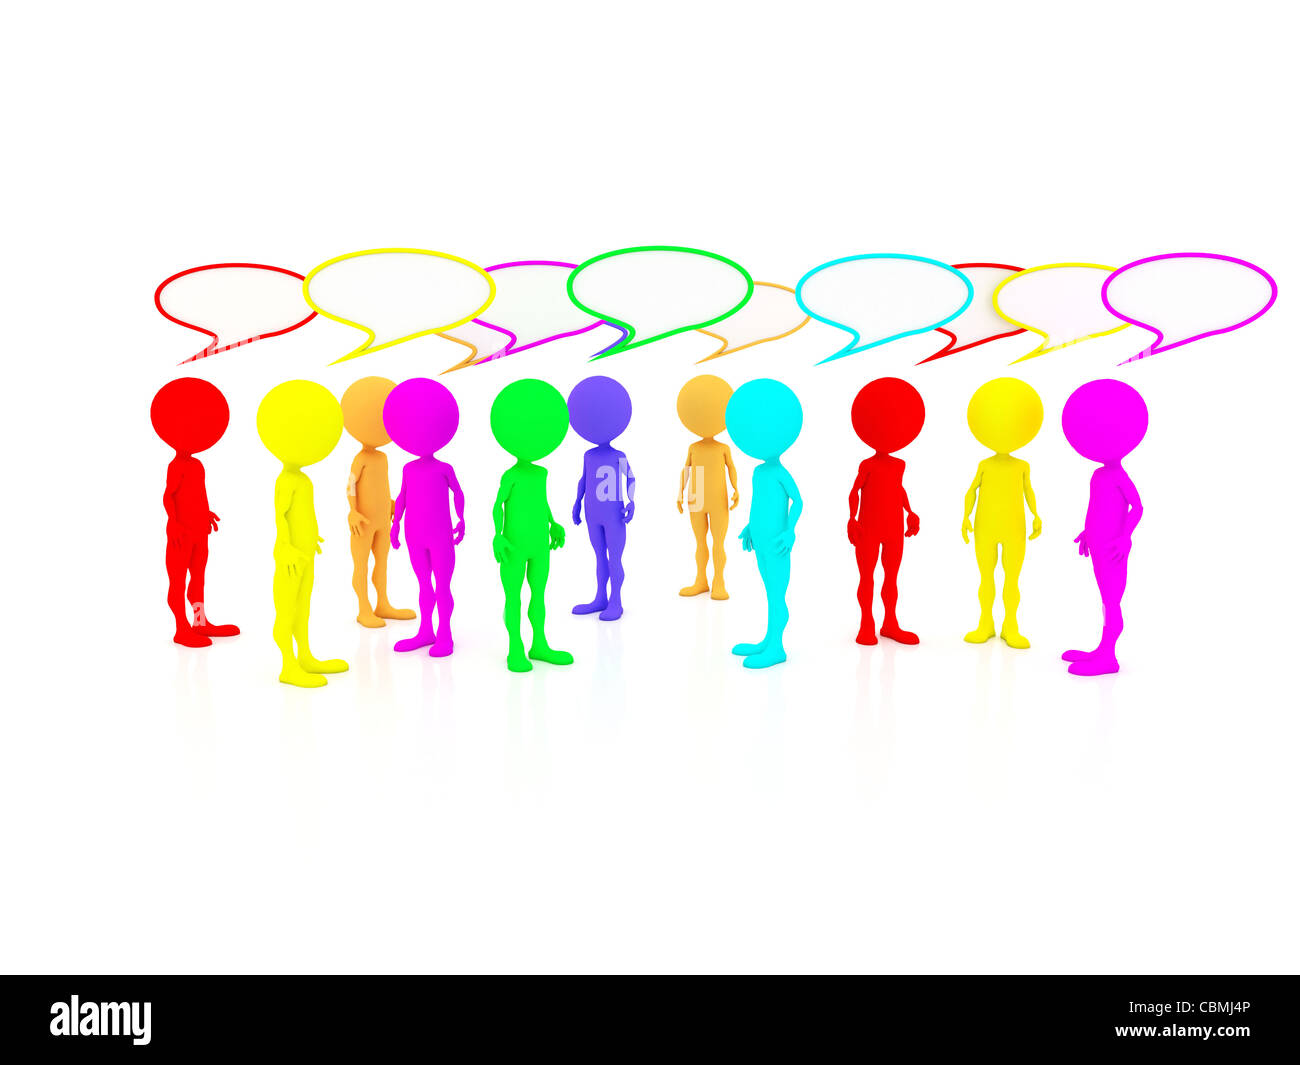 several people sharing their opinions and voicing concerns and criticism to communicate their thoughts - Stock Image